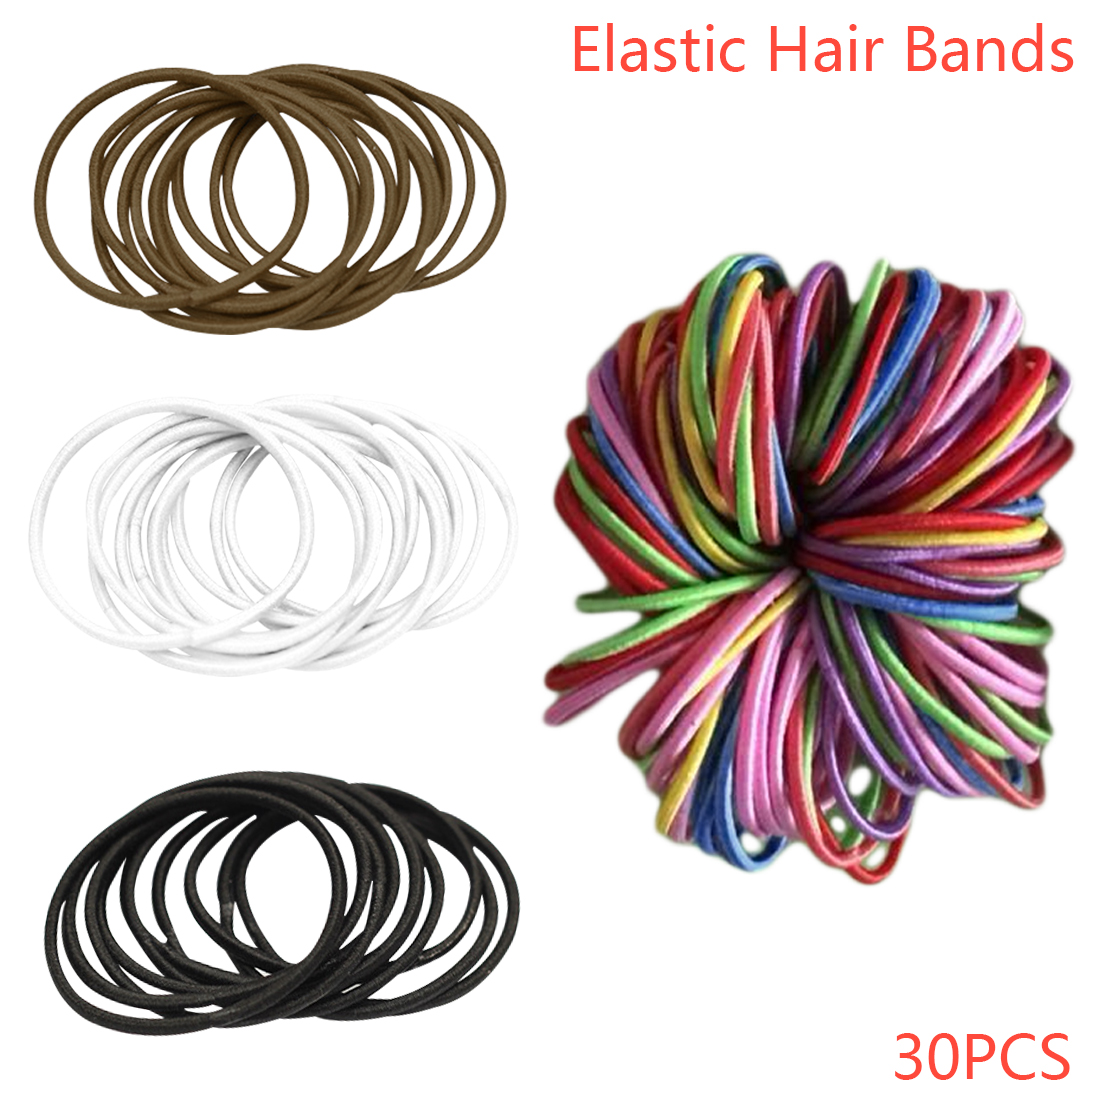 Elastic Rubberbands 30pcs/bag Hair Accessories For Girls Ponytail Holder Scrunchie Headdress Tie Gum Mix Color